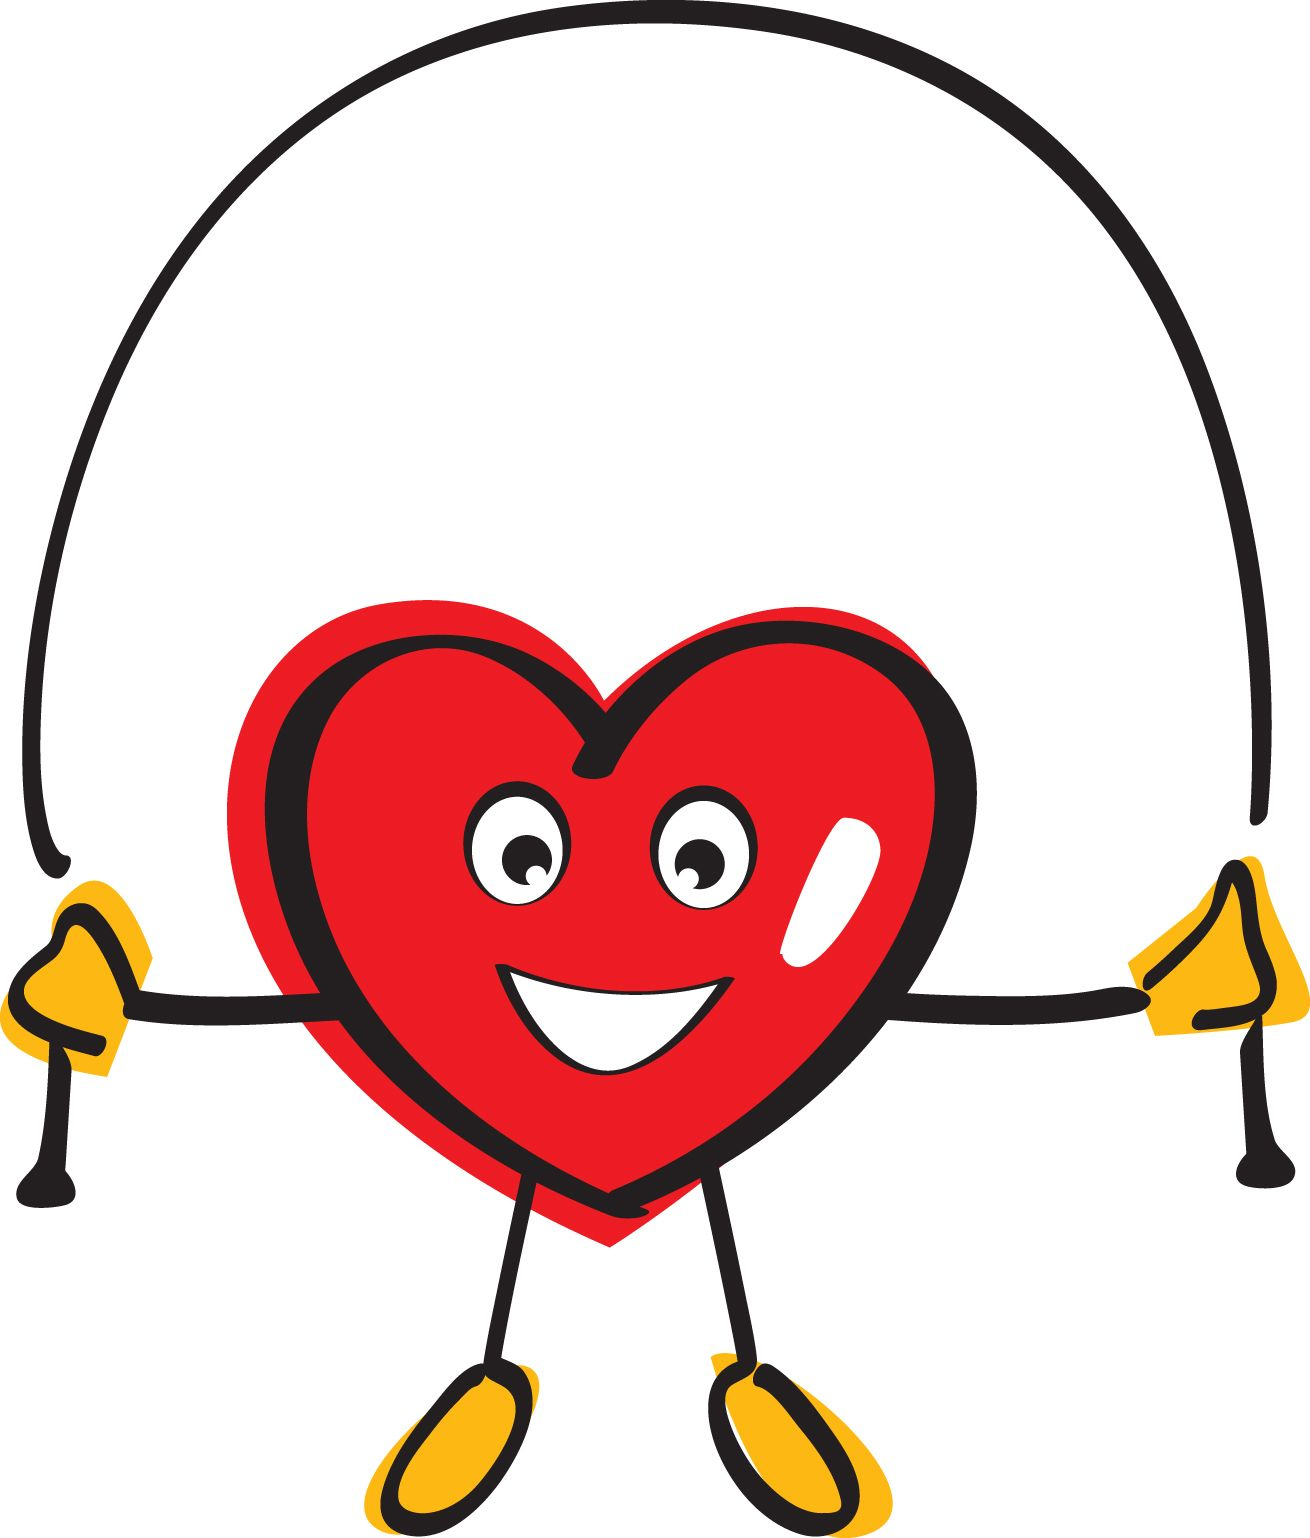 Jump rope for heart <3.